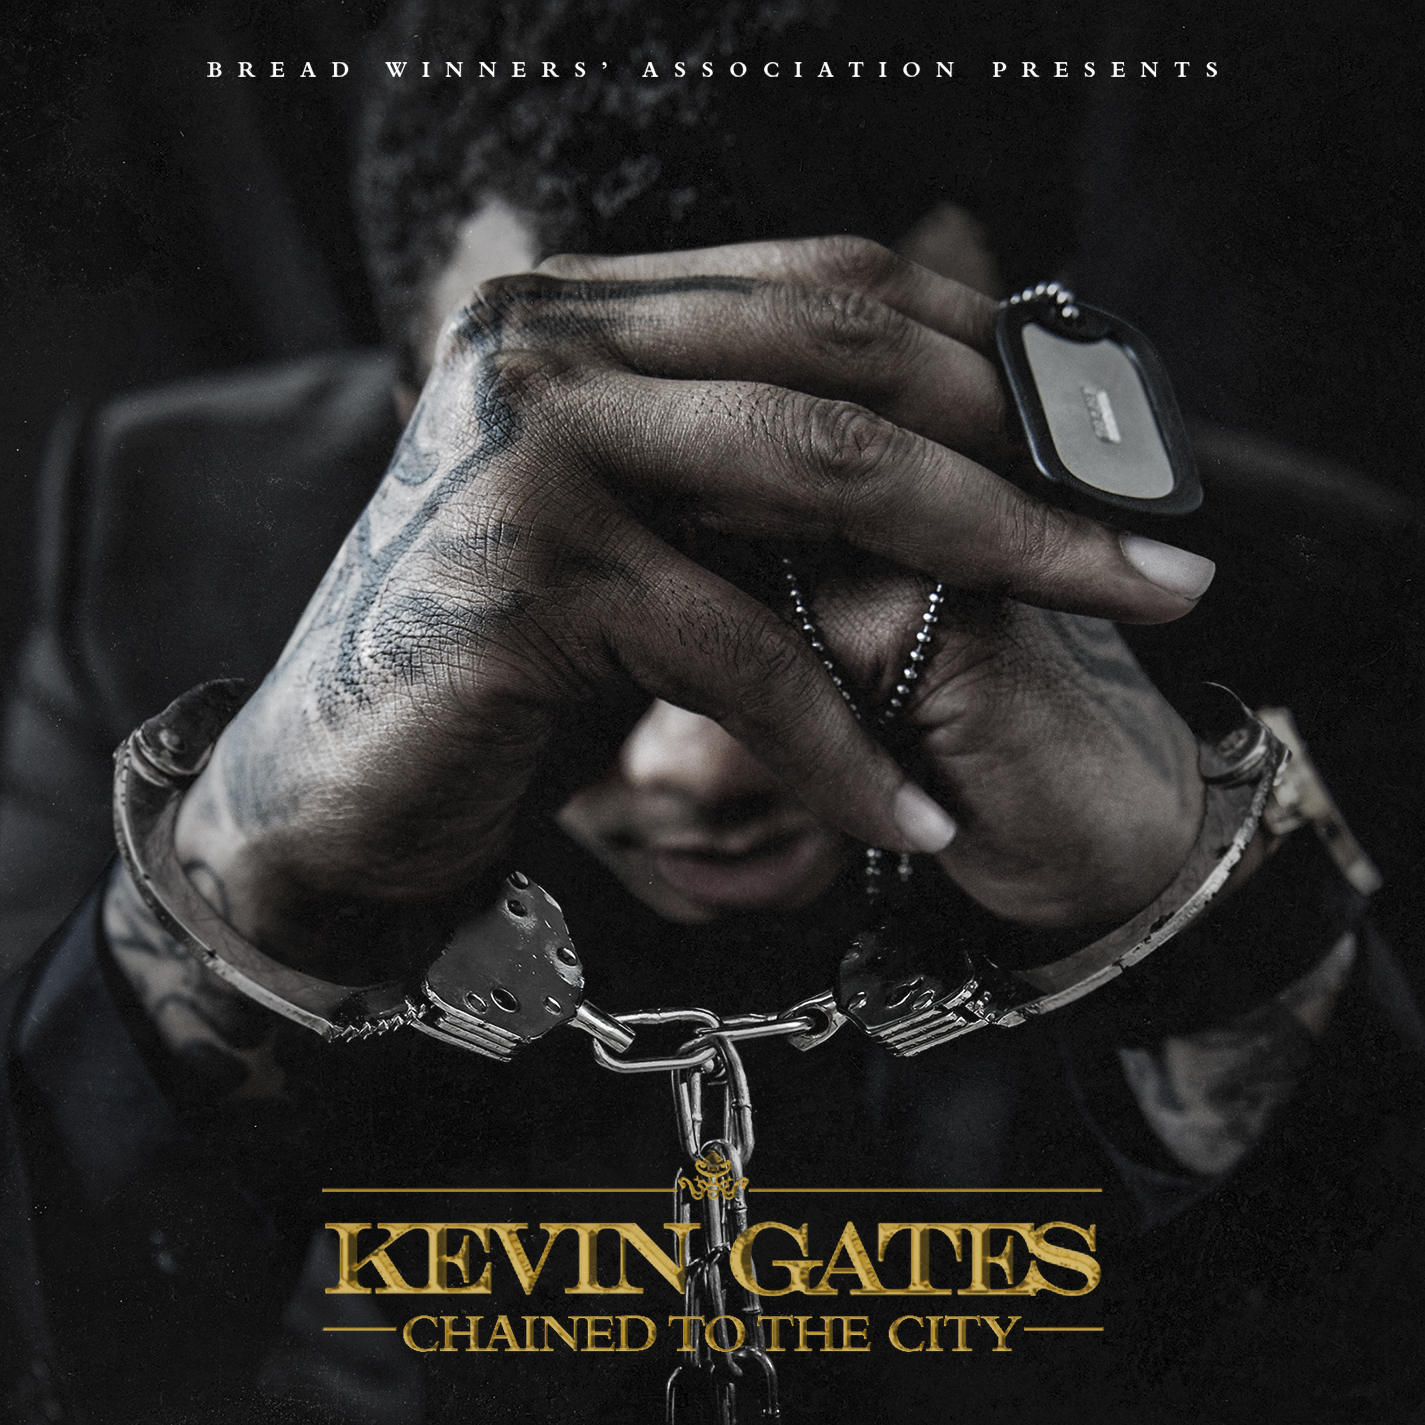 kevin gates chained to the city